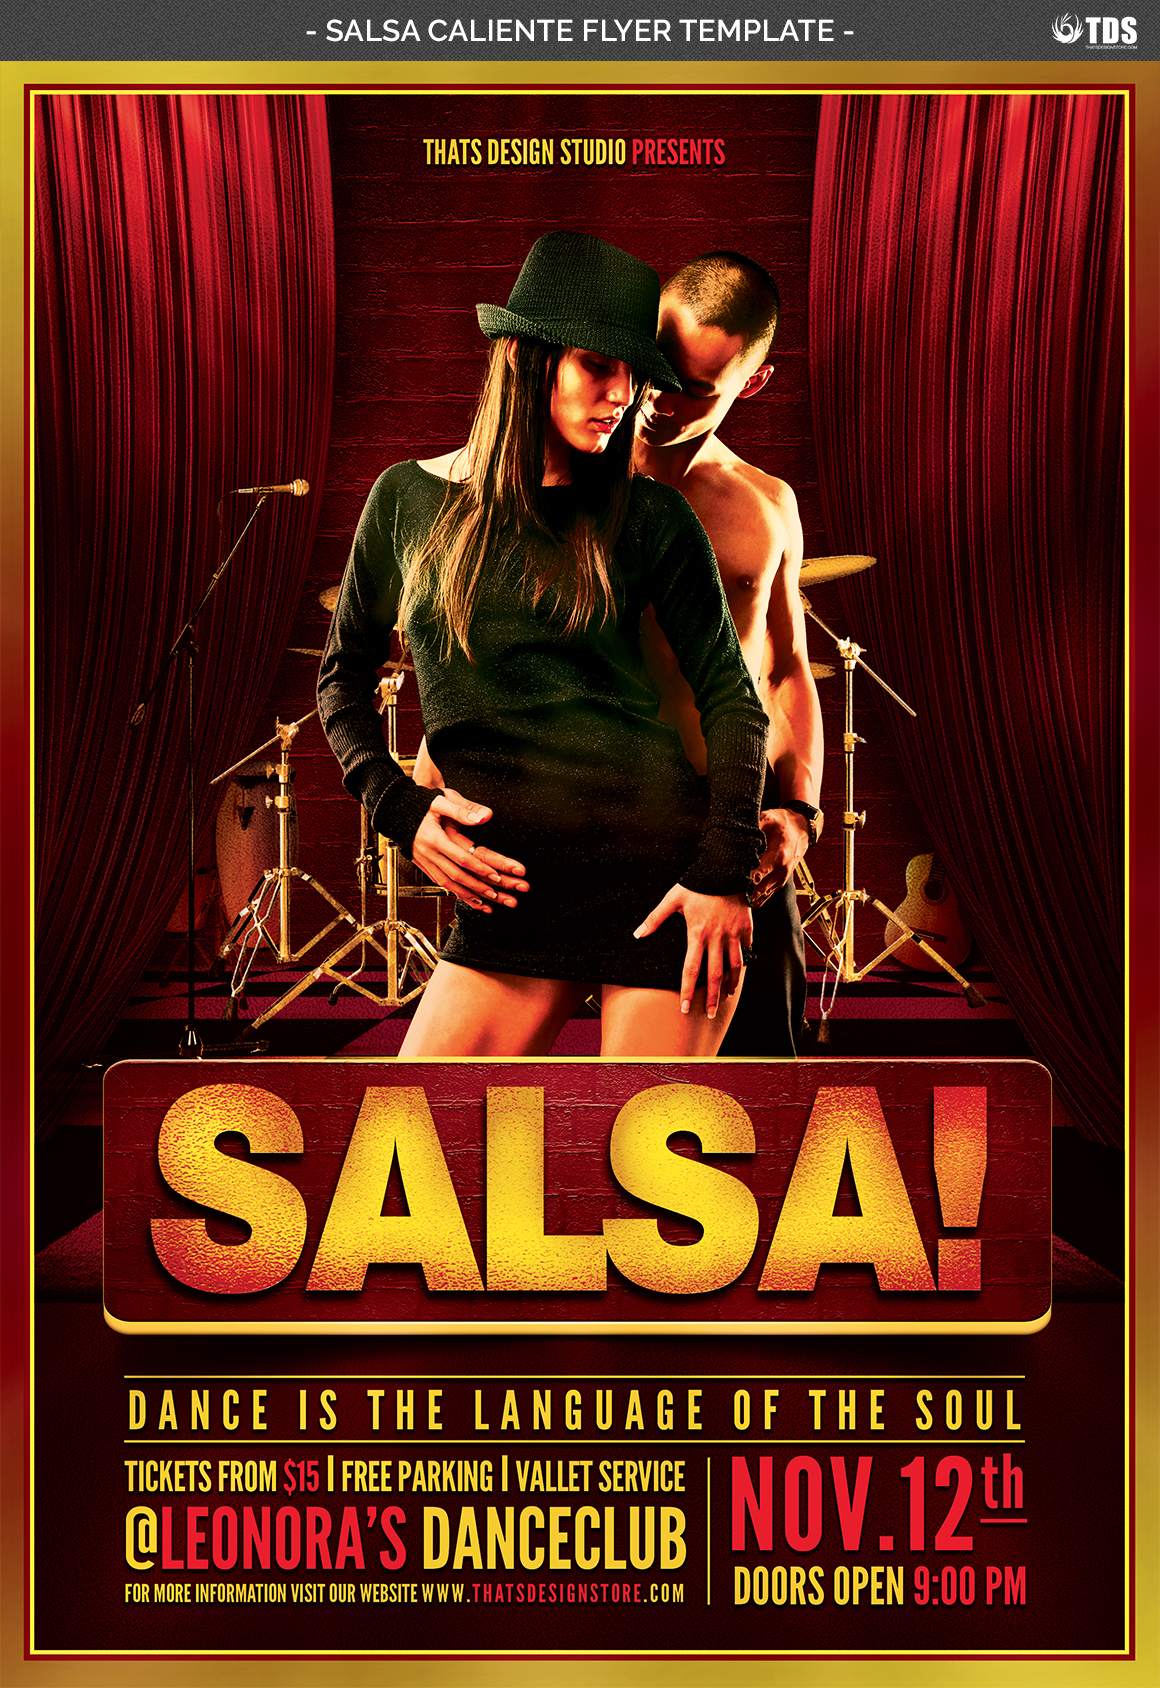 Salsa Caliente Flyer Template example image 4